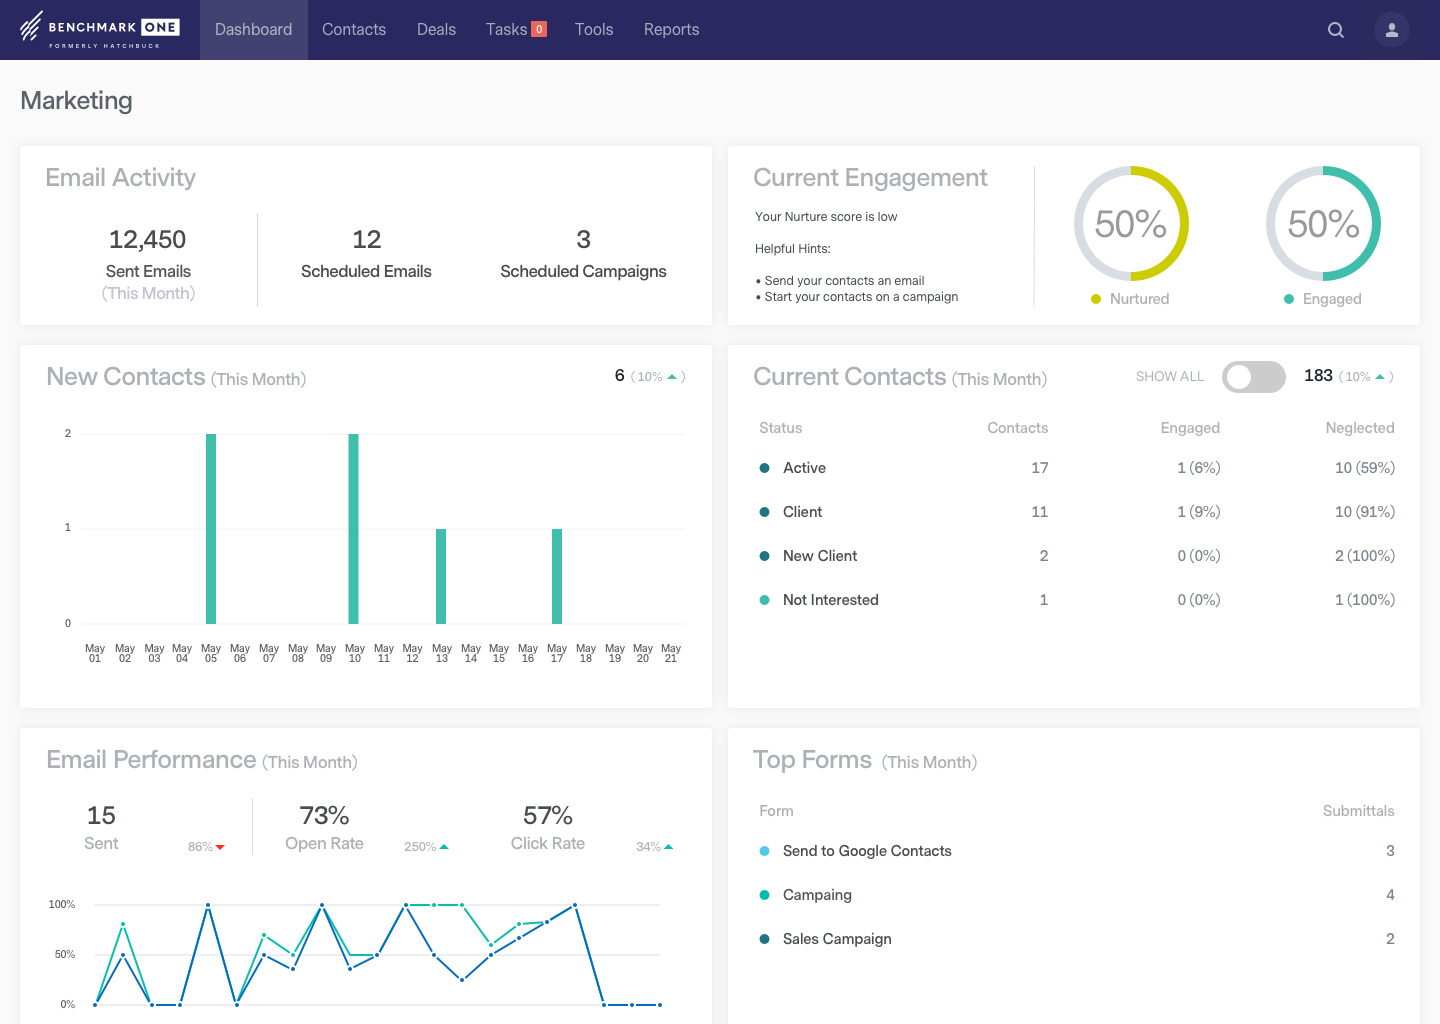 BenchmarkONE screenshot: Watch cold leads become engaged prospects and new sales opportunities on the marketing dashboard.